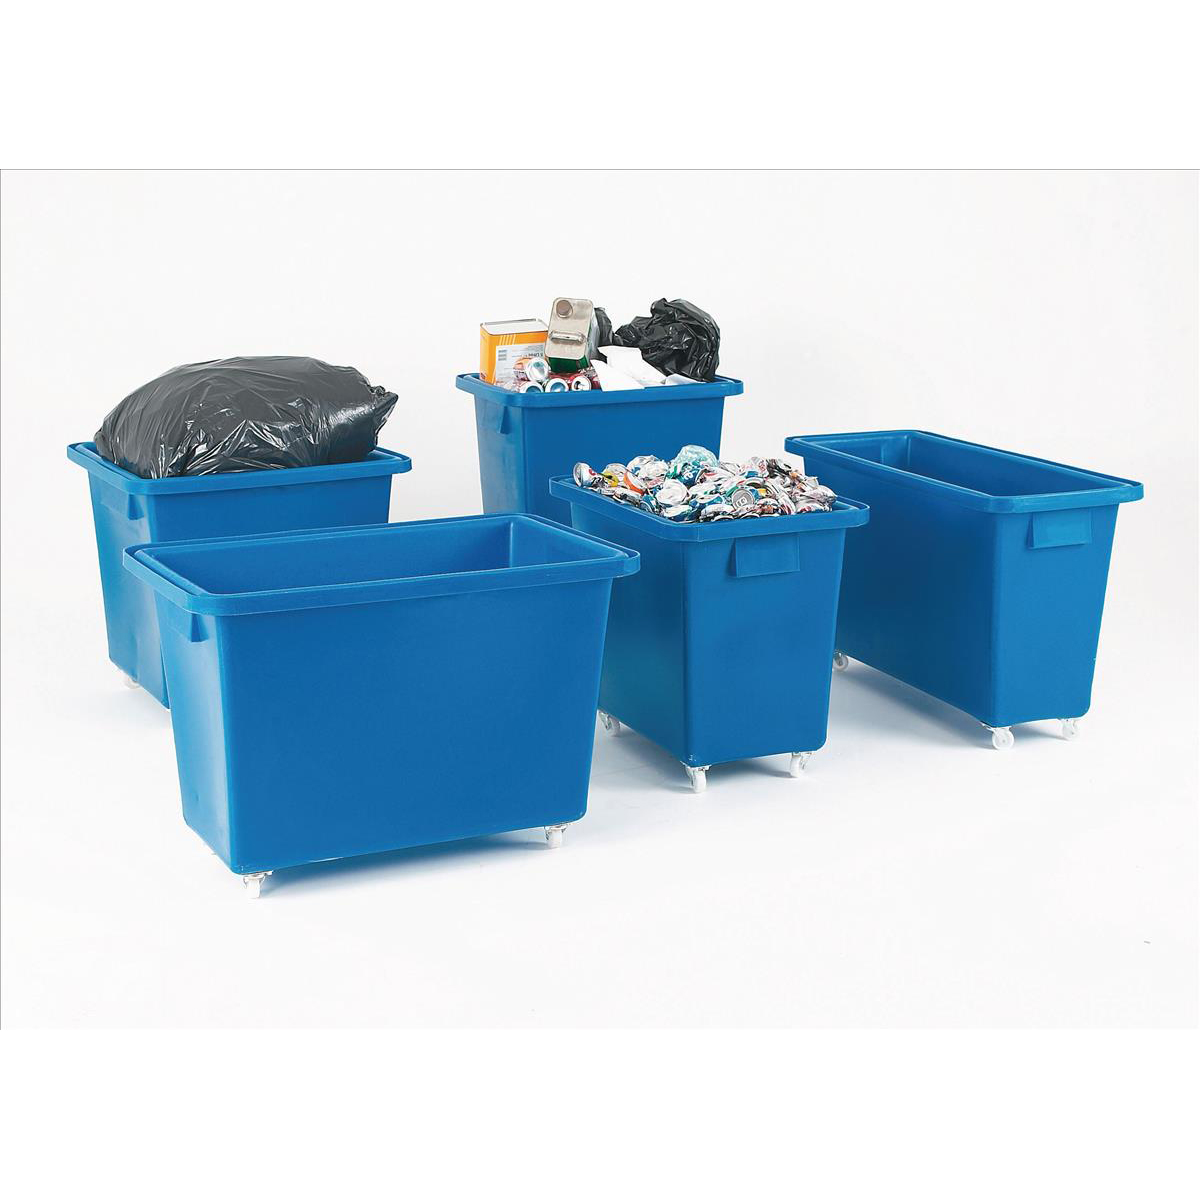 Bottle Skip Four Castors Medium Density Polyethylene 930x340x550mm Royal Blue